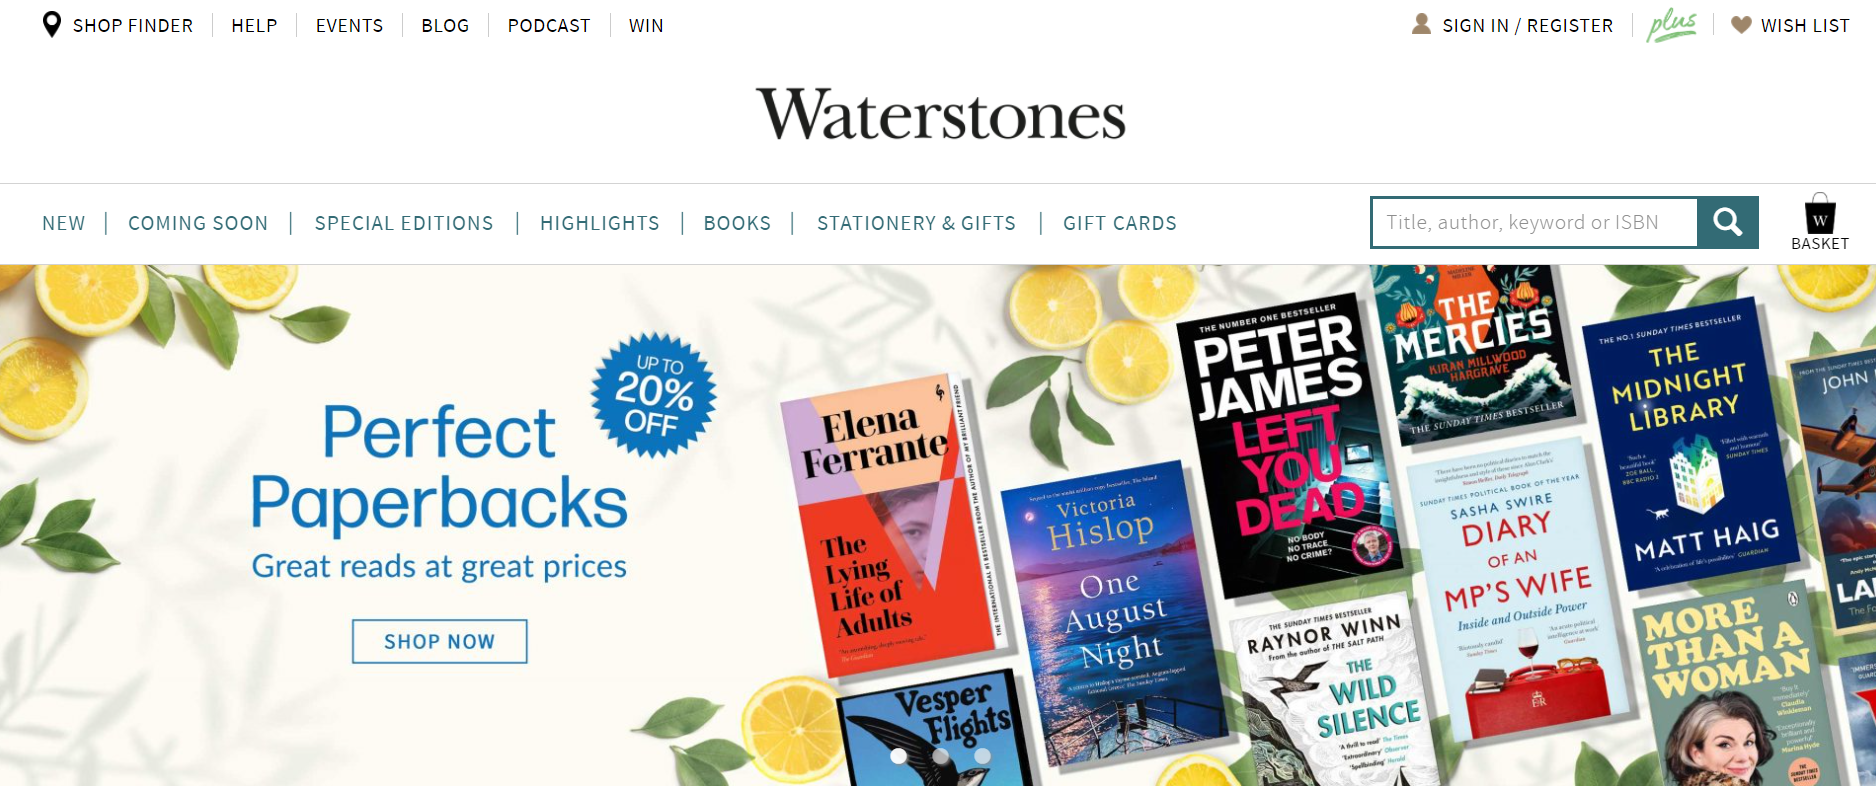 product-listing-page-example-from-waterstones